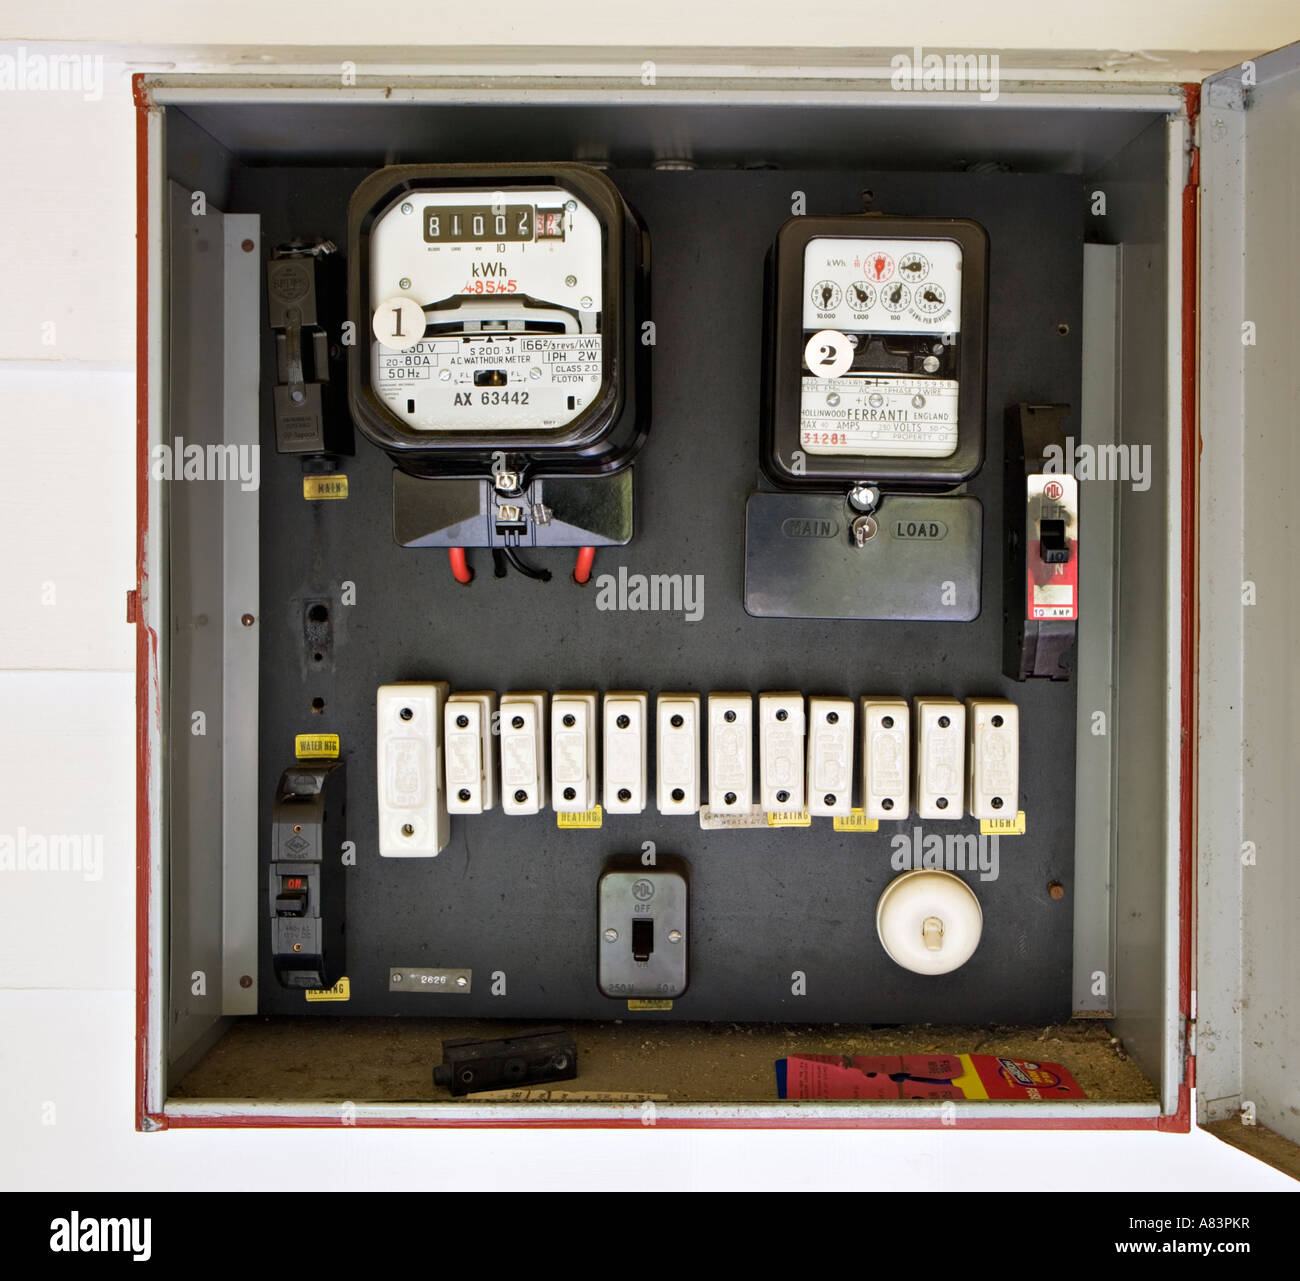 Surprising Meter Panel Wiring Wiring Diagram Wiring Digital Resources Funapmognl